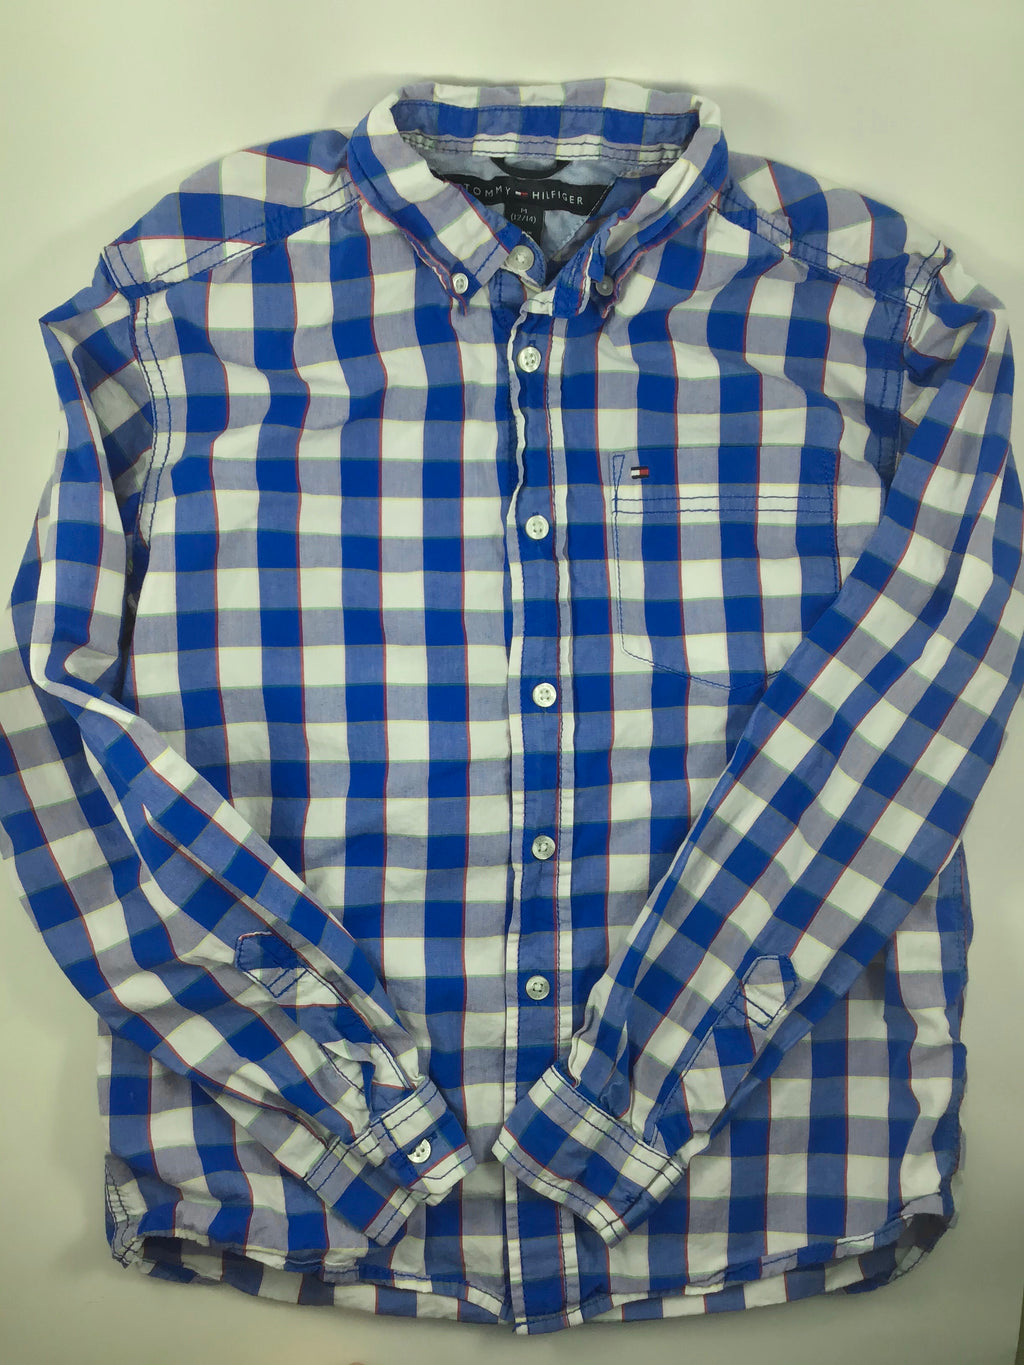 Boy's Long Sleeve Shirt - Size 10/12